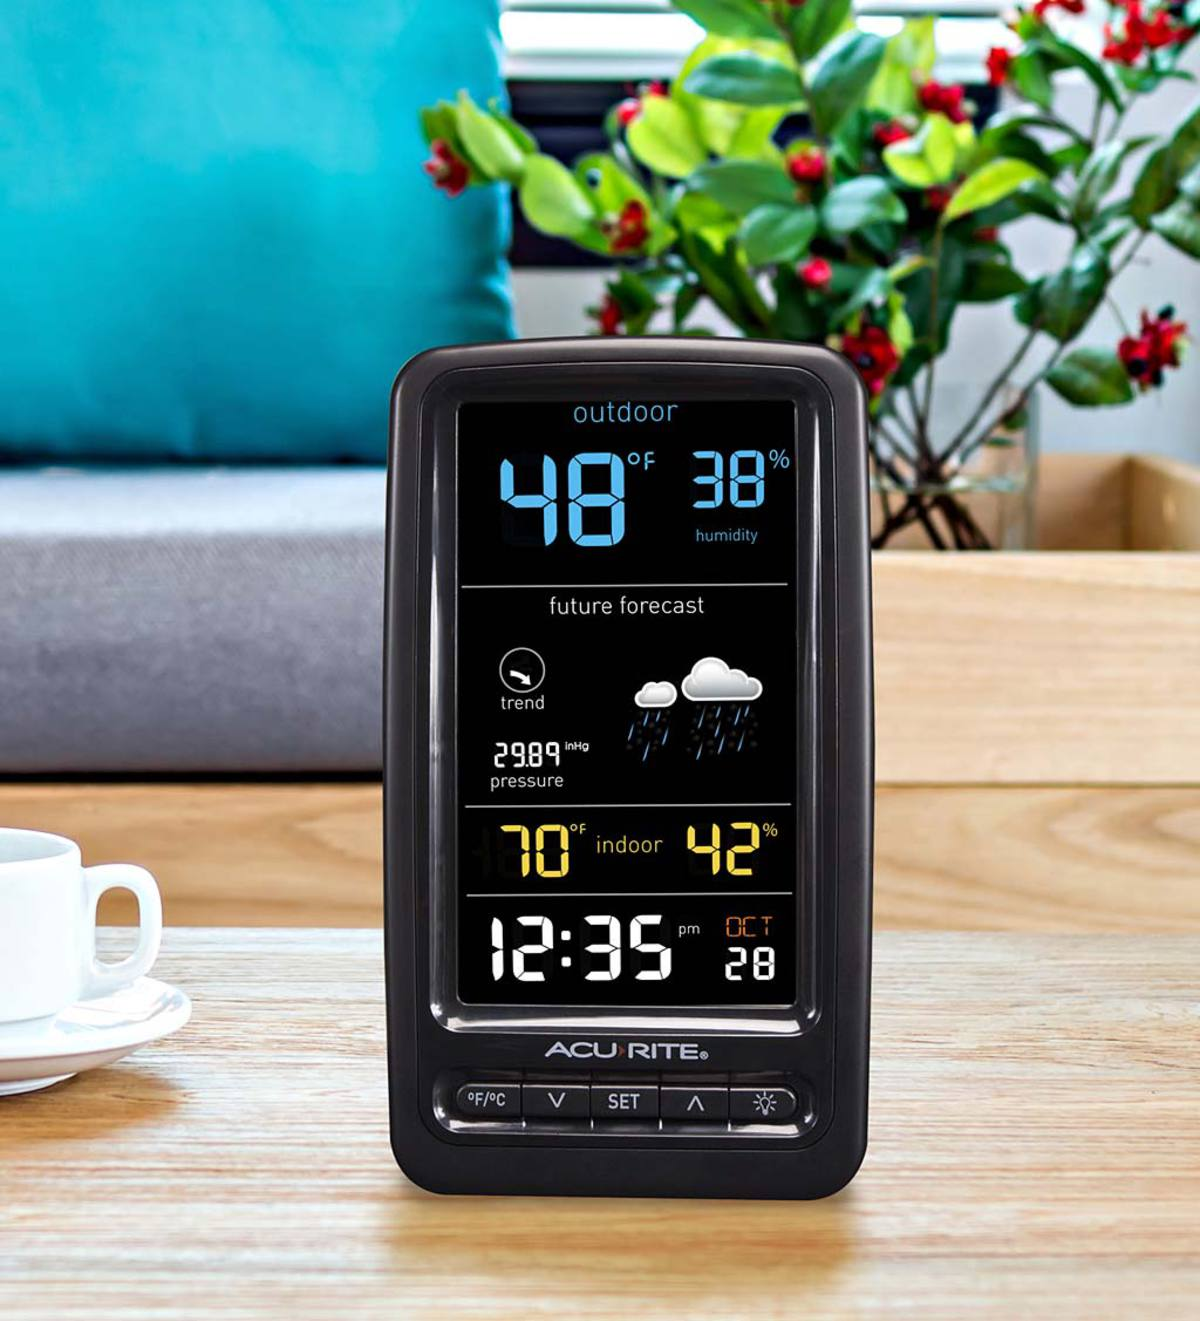 AcuRite® Compact Wireless Weather Station